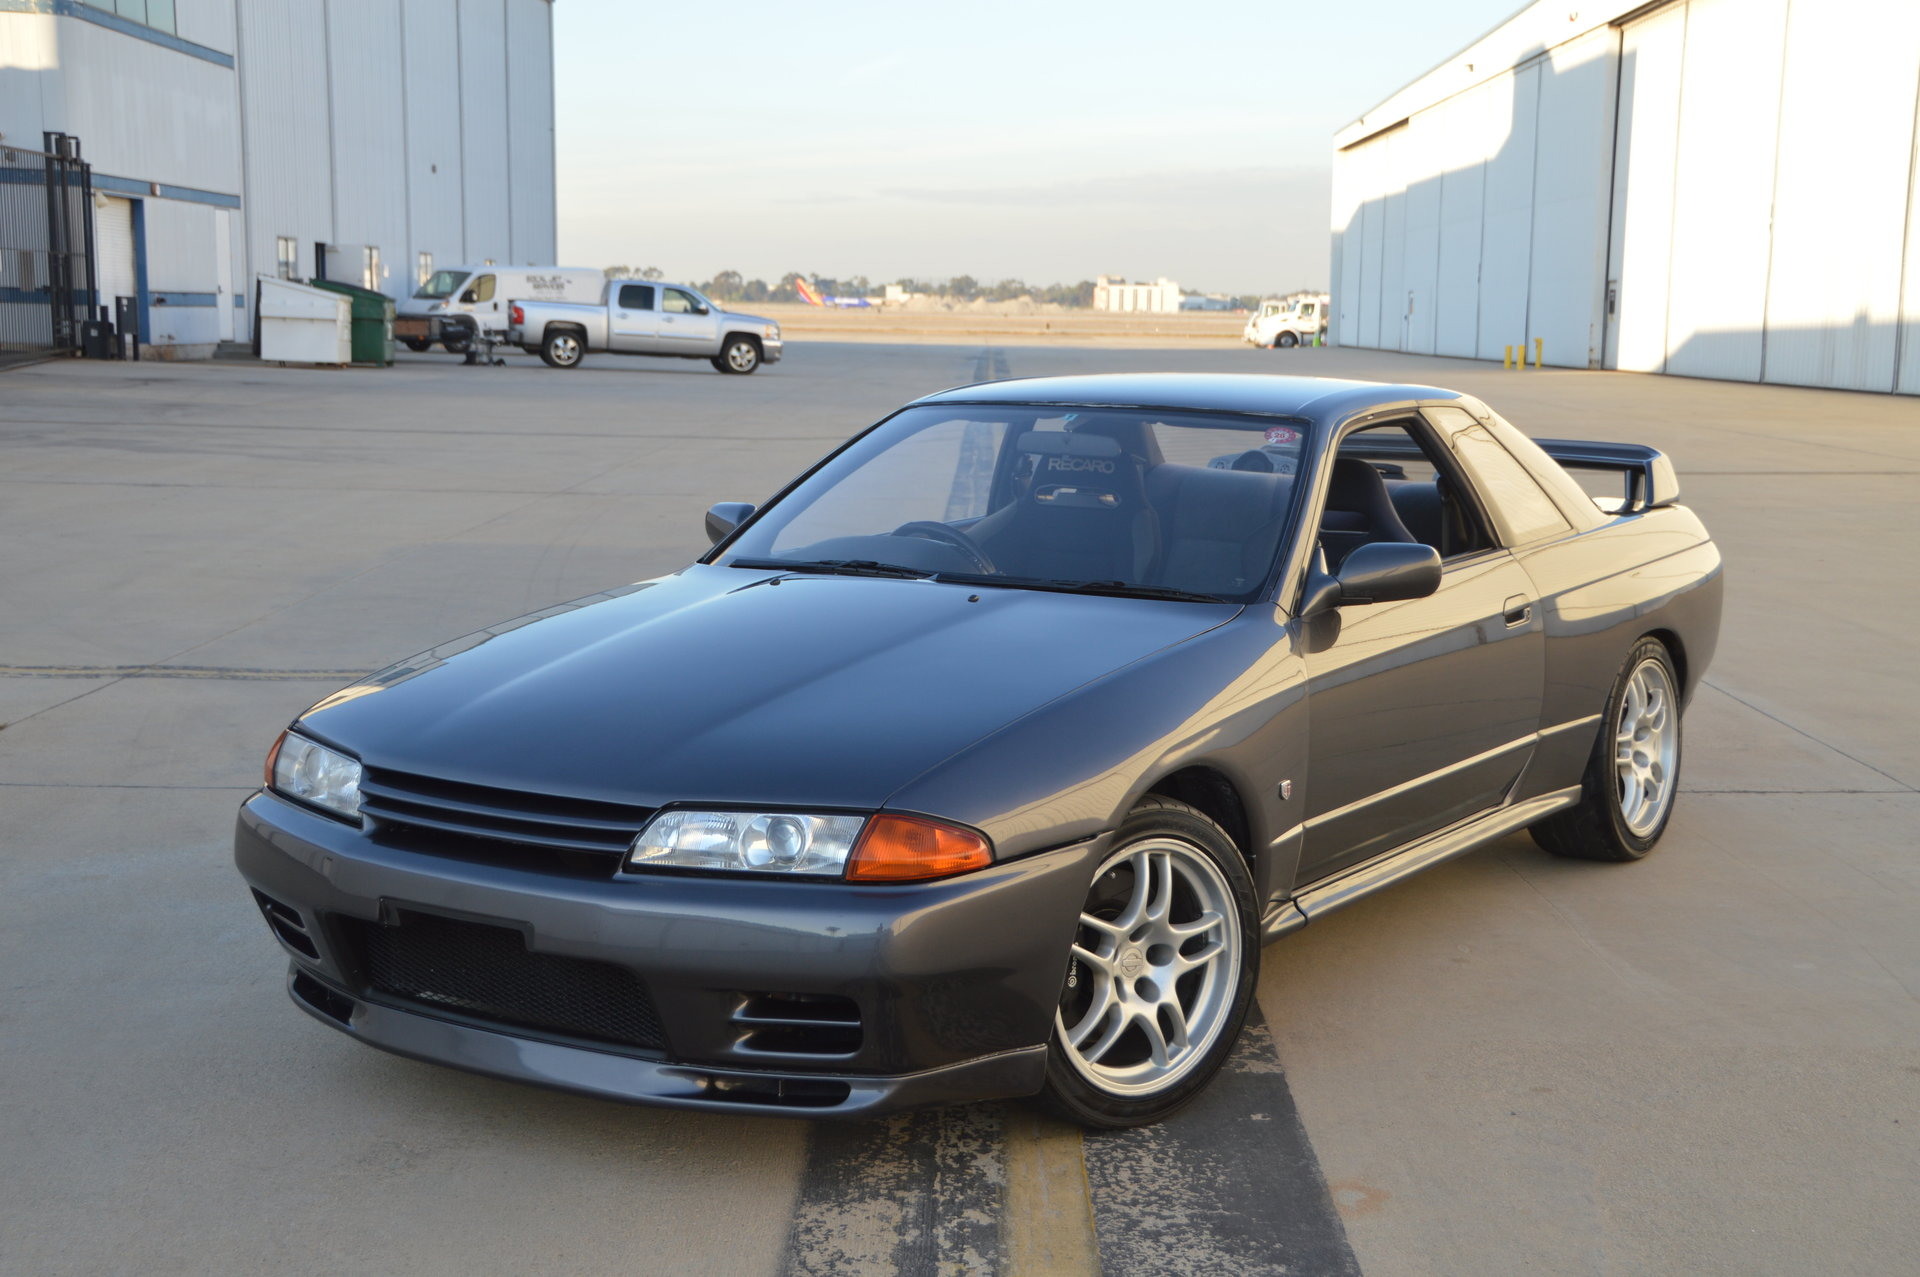 1991 nissan skyline gt r for sale 73045 mcg. Black Bedroom Furniture Sets. Home Design Ideas